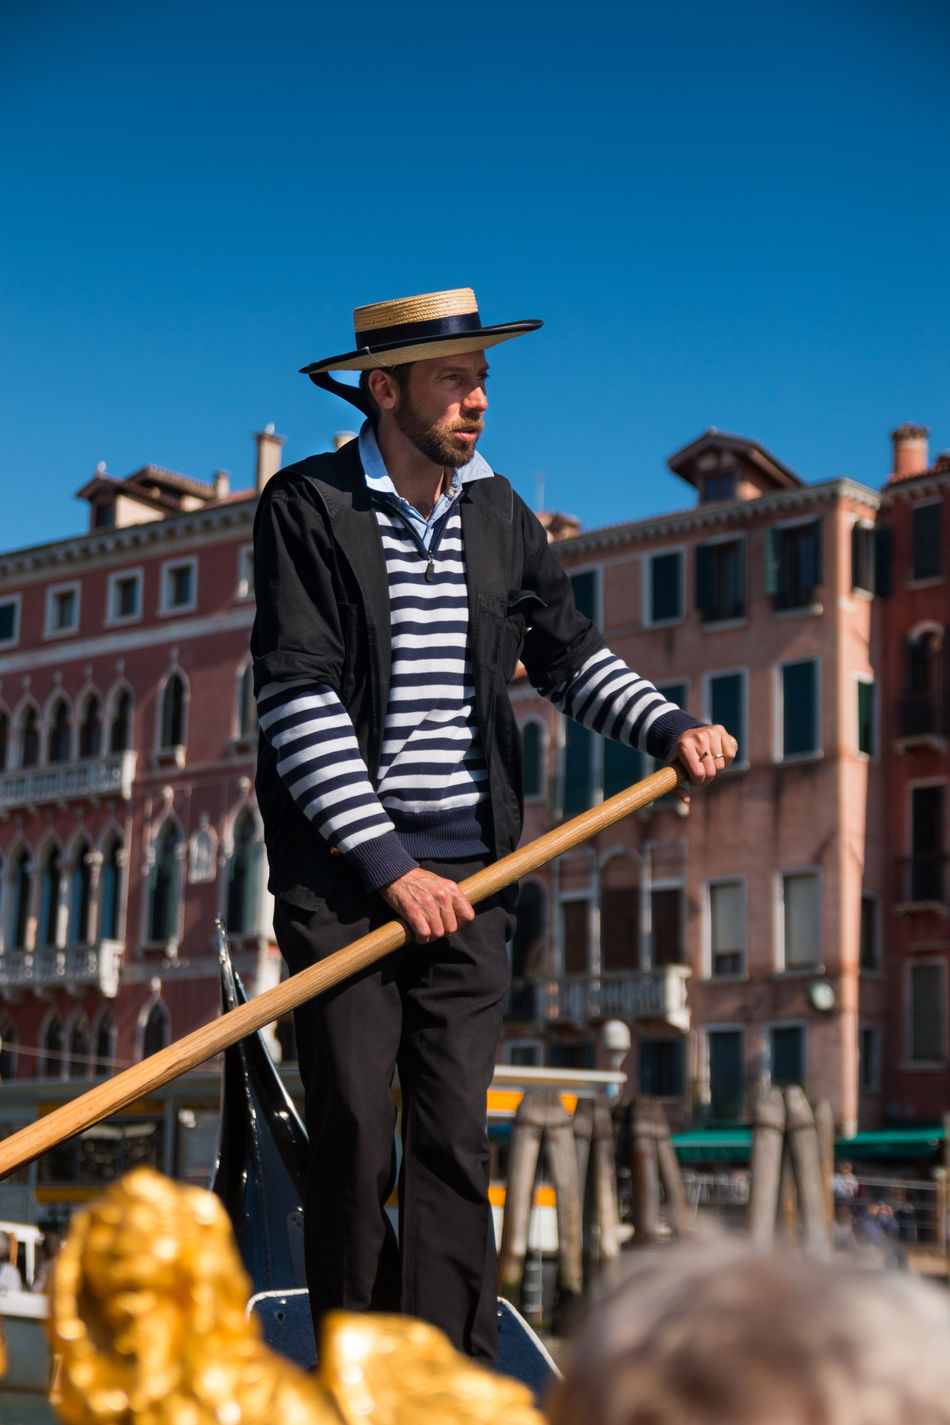 Architecture Building Exterior Built Structure City Day Italy Lifestyles Mid Adult Mid Adult Men One Person Outdoors People Real People Sky Standing Venice, Italy Young Adult